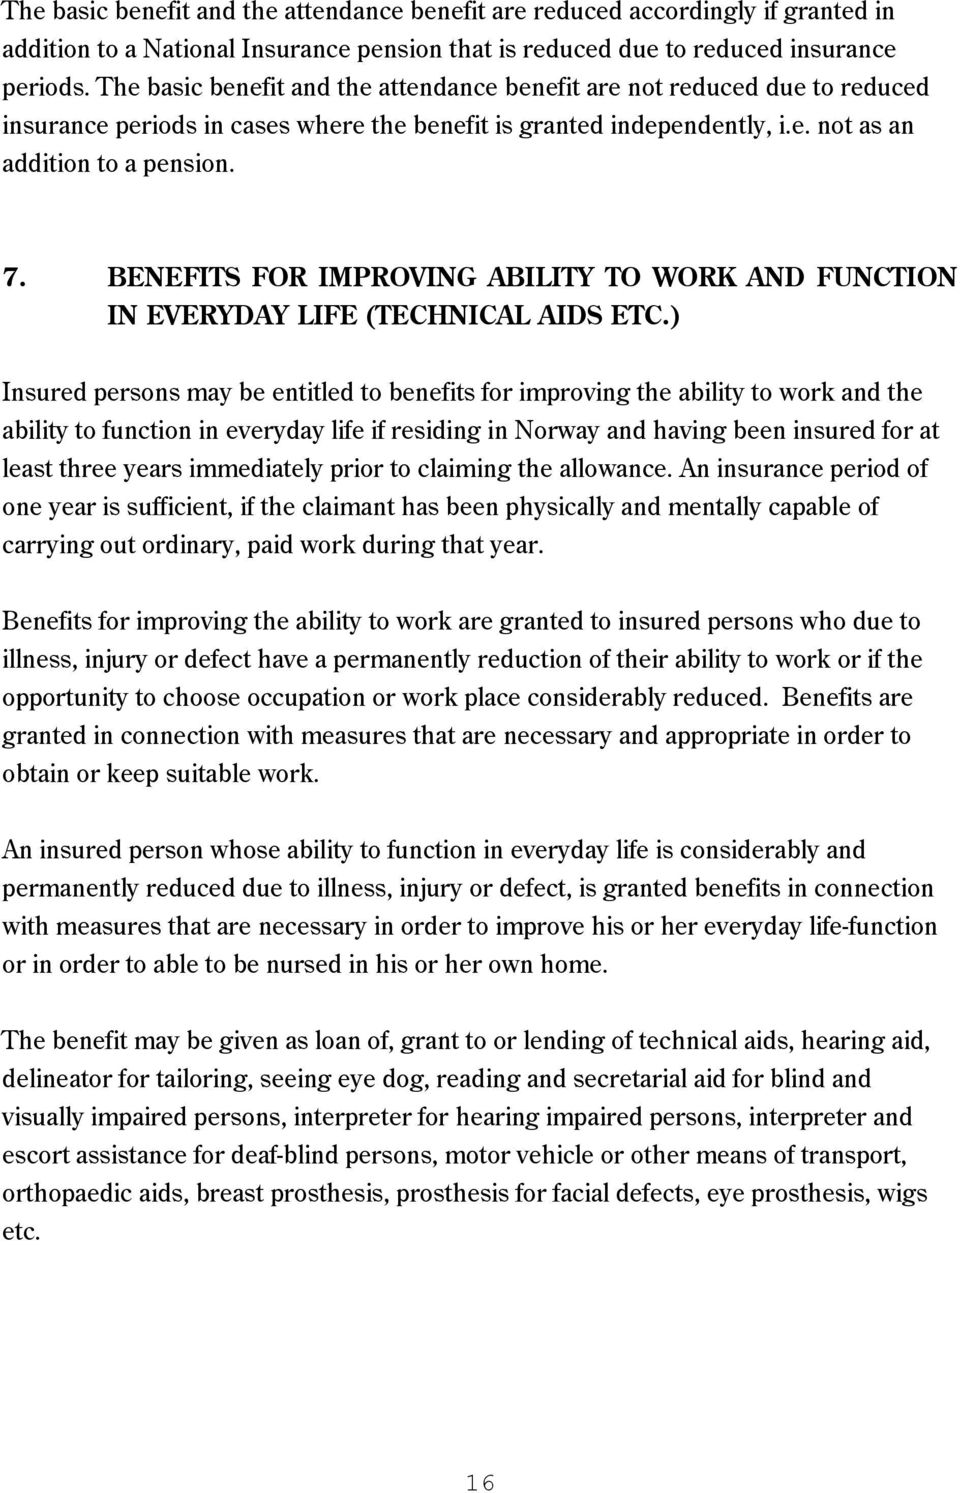 BENEFITS FOR IMPROVING ABILITY TO WORK AND FUNCTION IN EVERYDAY LIFE (TECHNICAL AIDS ETC.